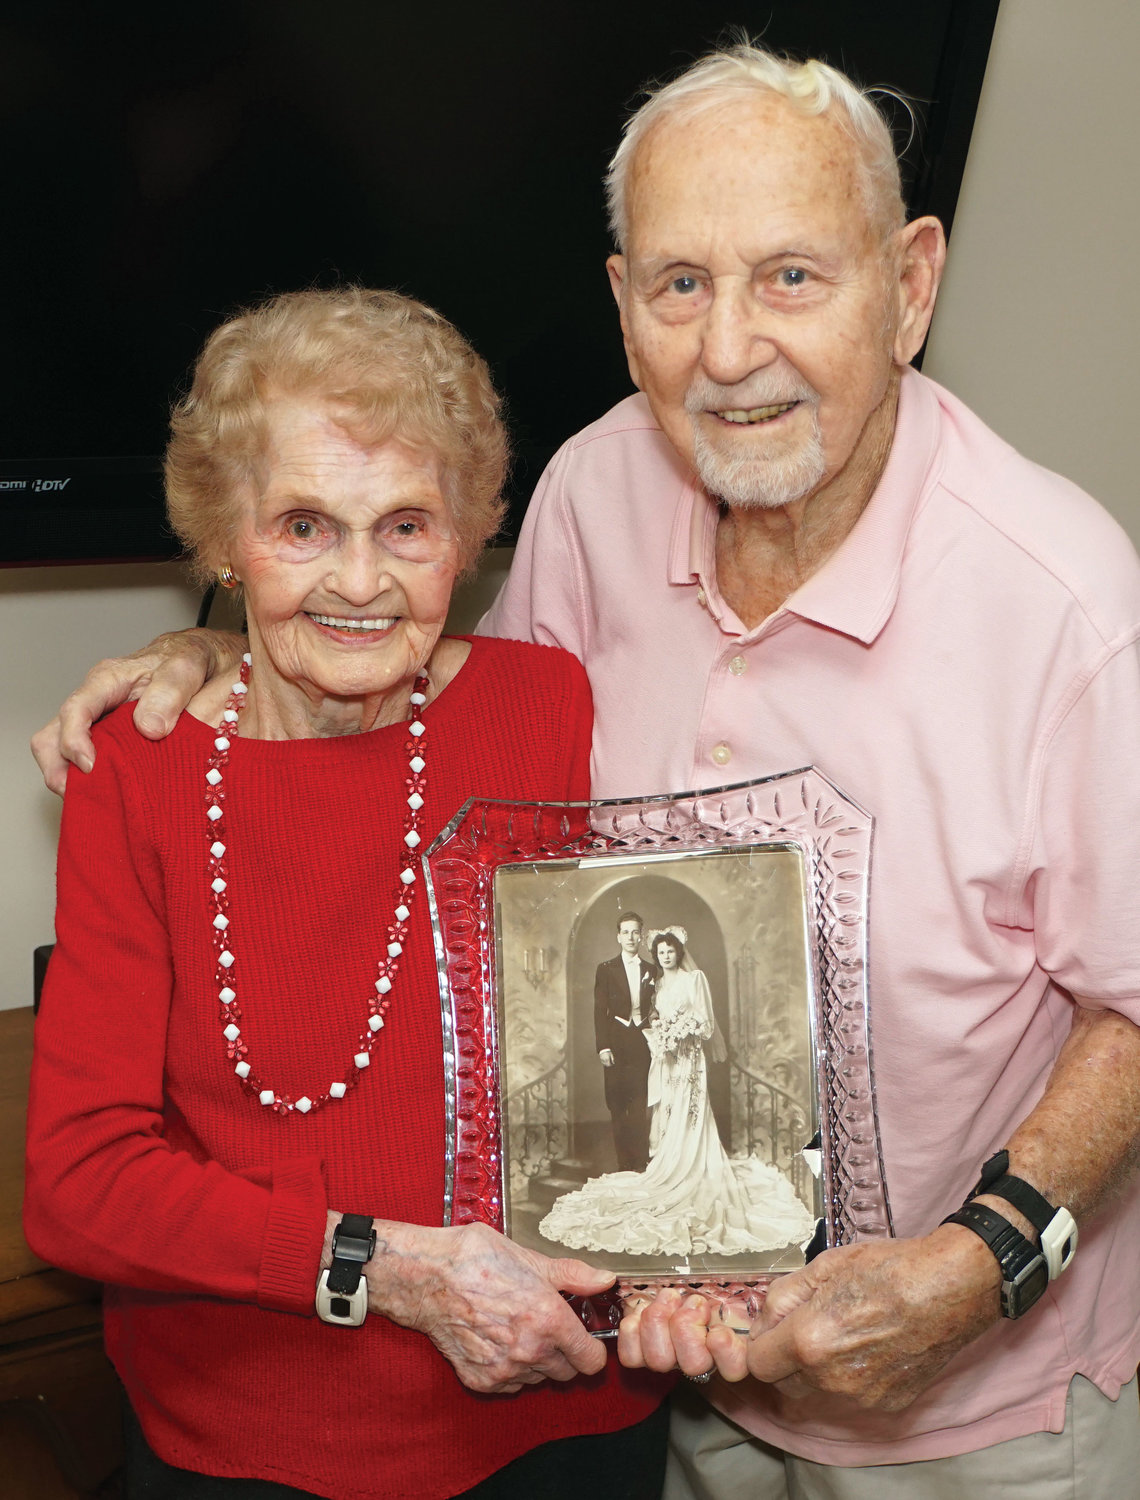 HAPPY COUPLE—Josie Maciocha, left, and her husband, Stanley, hold a treasured photo from their wedding day of Jan. 24, 1943. The parishioners of Transfiguration in Tarrytown are the longest-married couple in the archdiocese following an annual search by the archdiocesan Family Life Office.